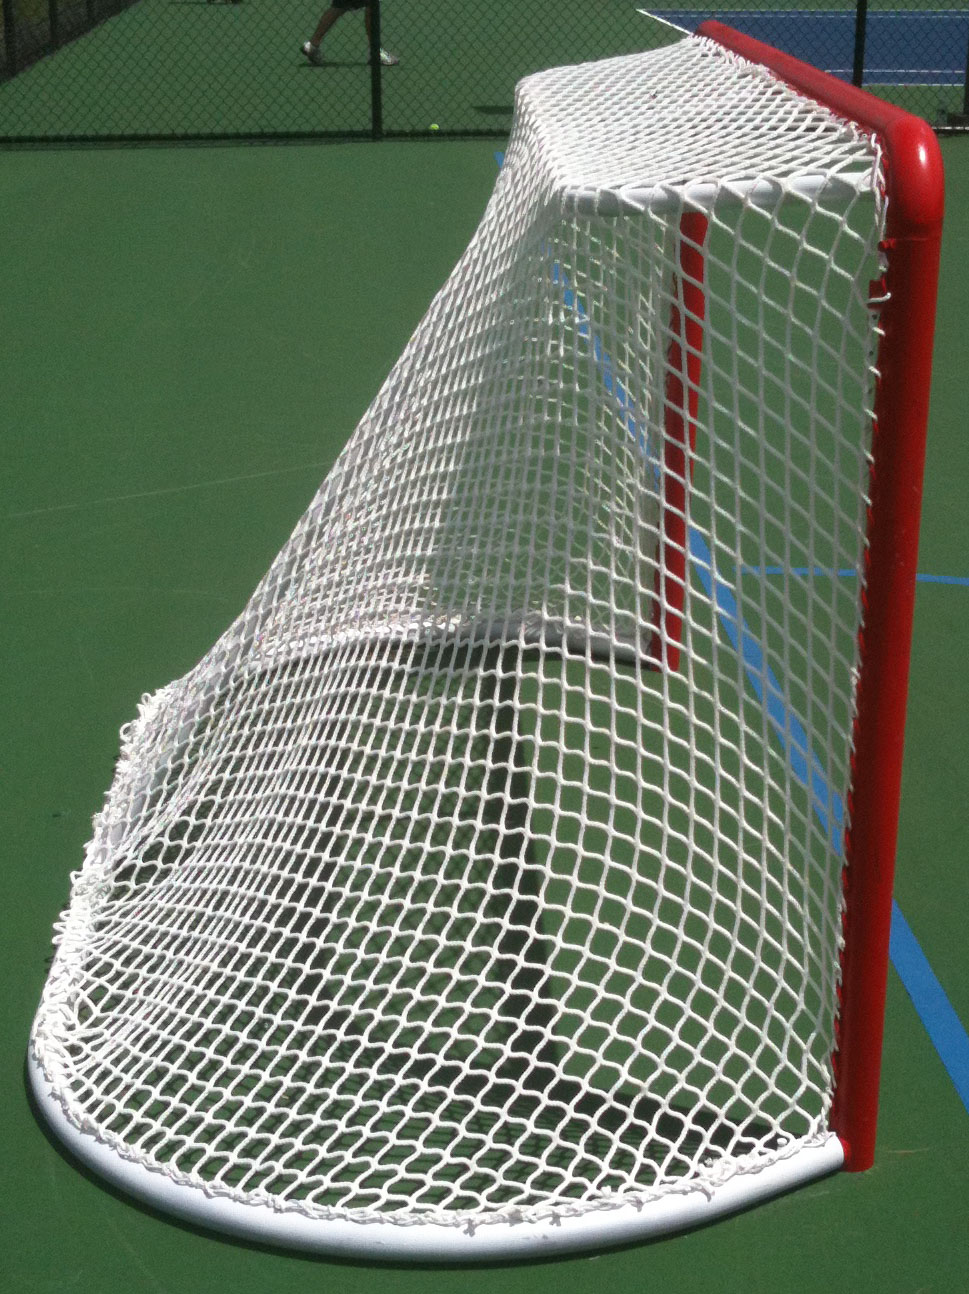 hockey goal refurbished 2.jpg